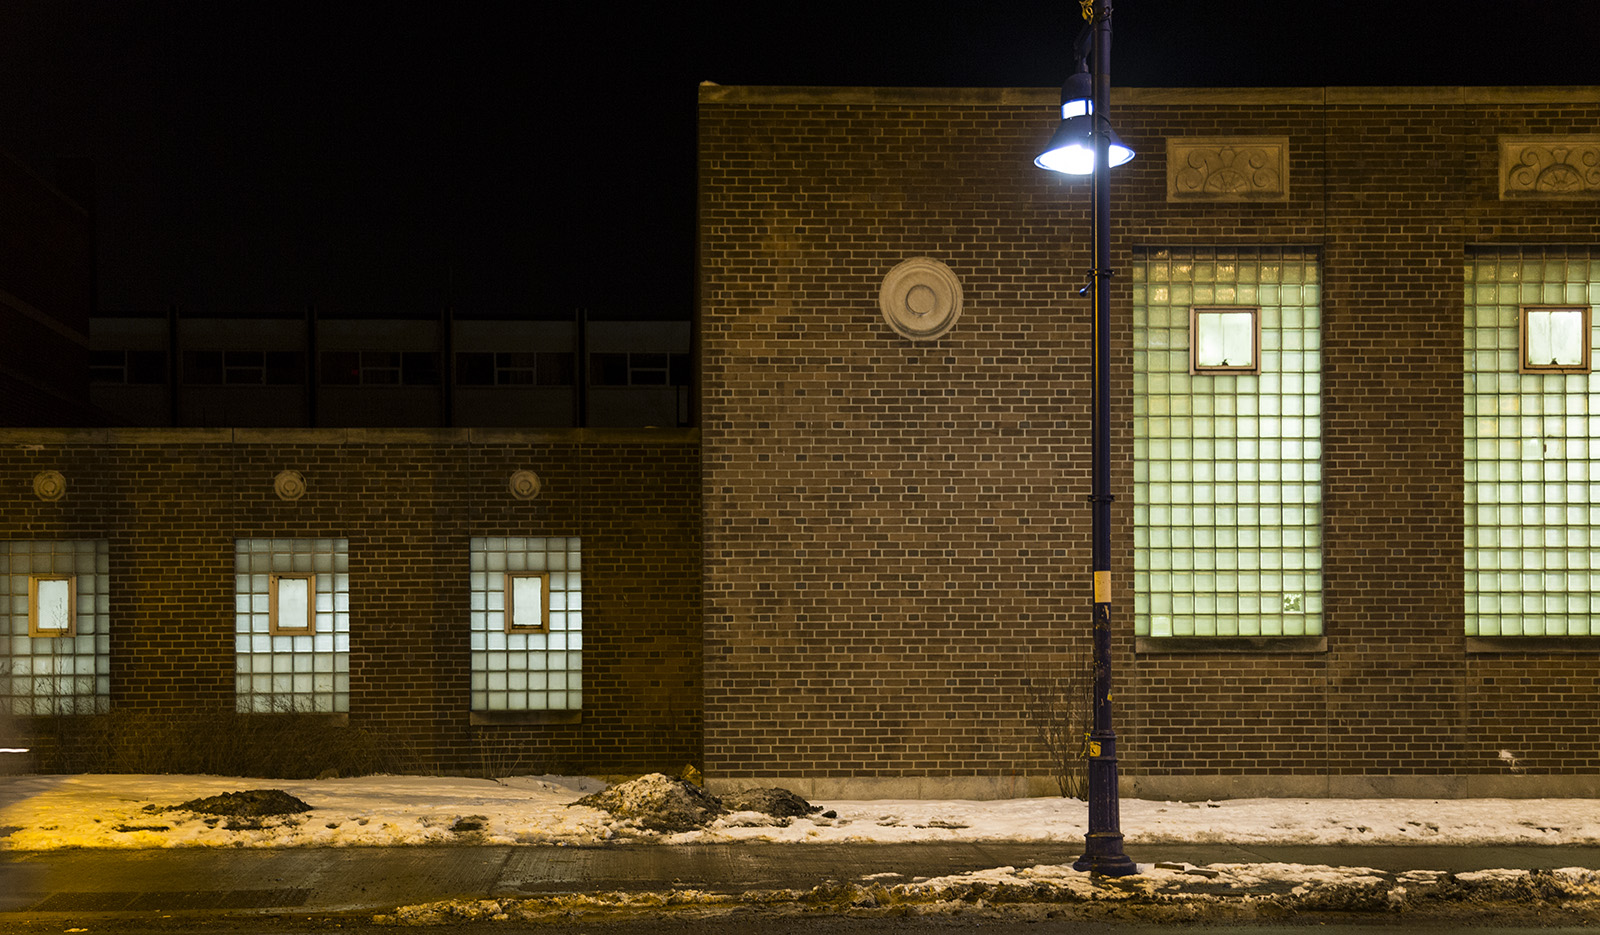 20140203. Bloor Collegiate Institute's windows have many panes and muntins (Bloor and Dufferin, Toronto).